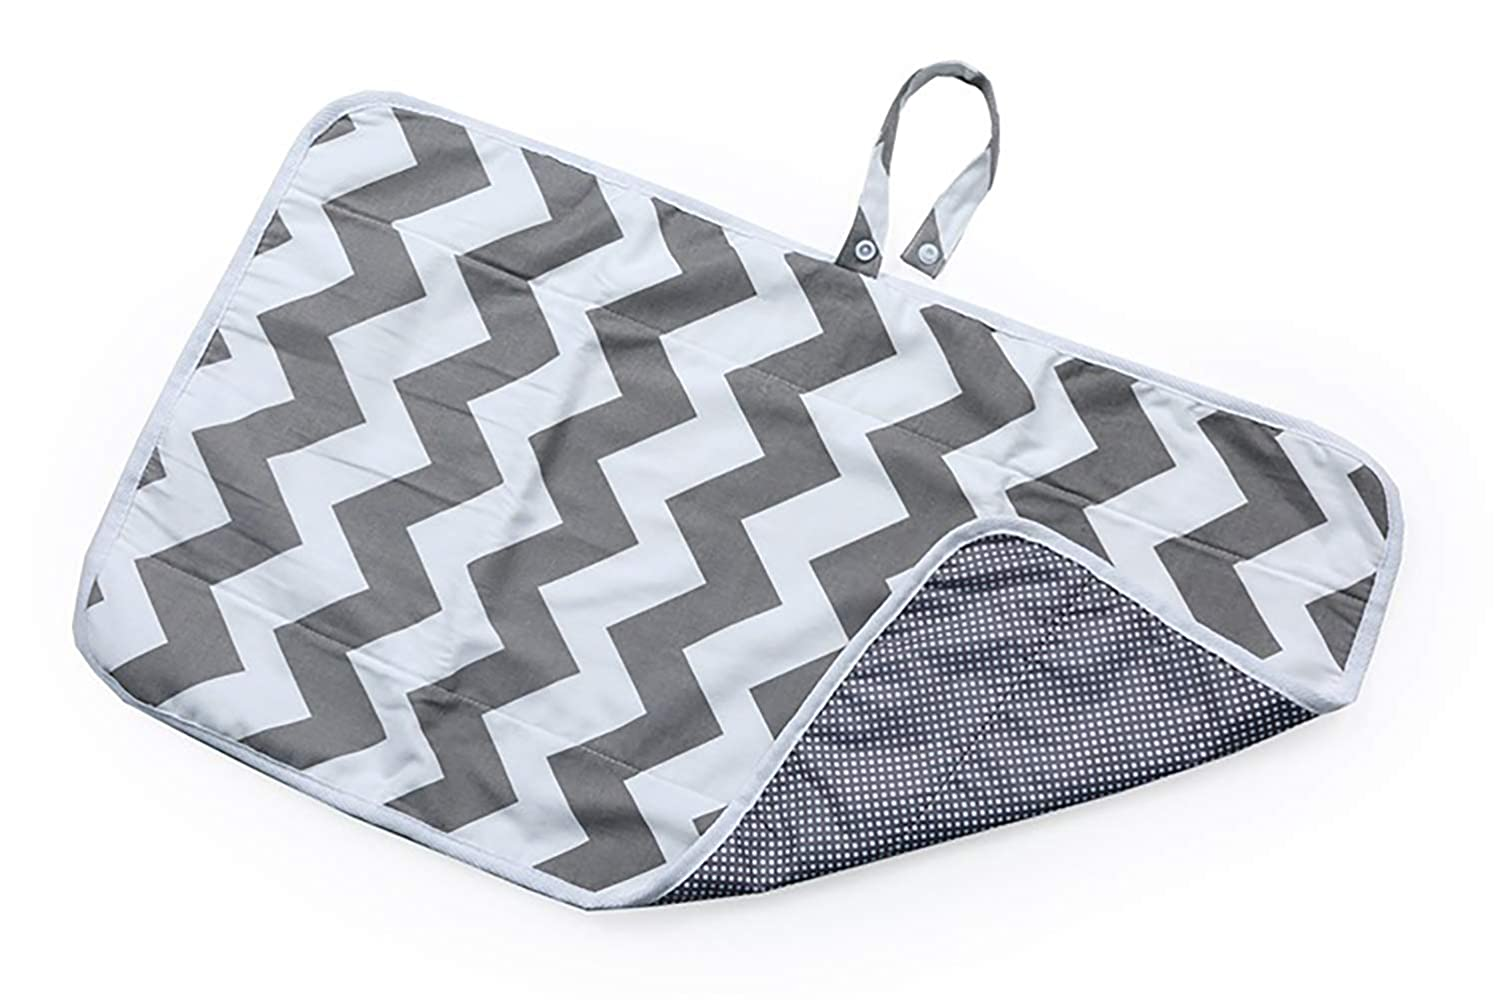 Opens to 15 x 25 Waterproof Fully Padded for Babys Comfort Grey Full Body Portable Baby Changing Pad